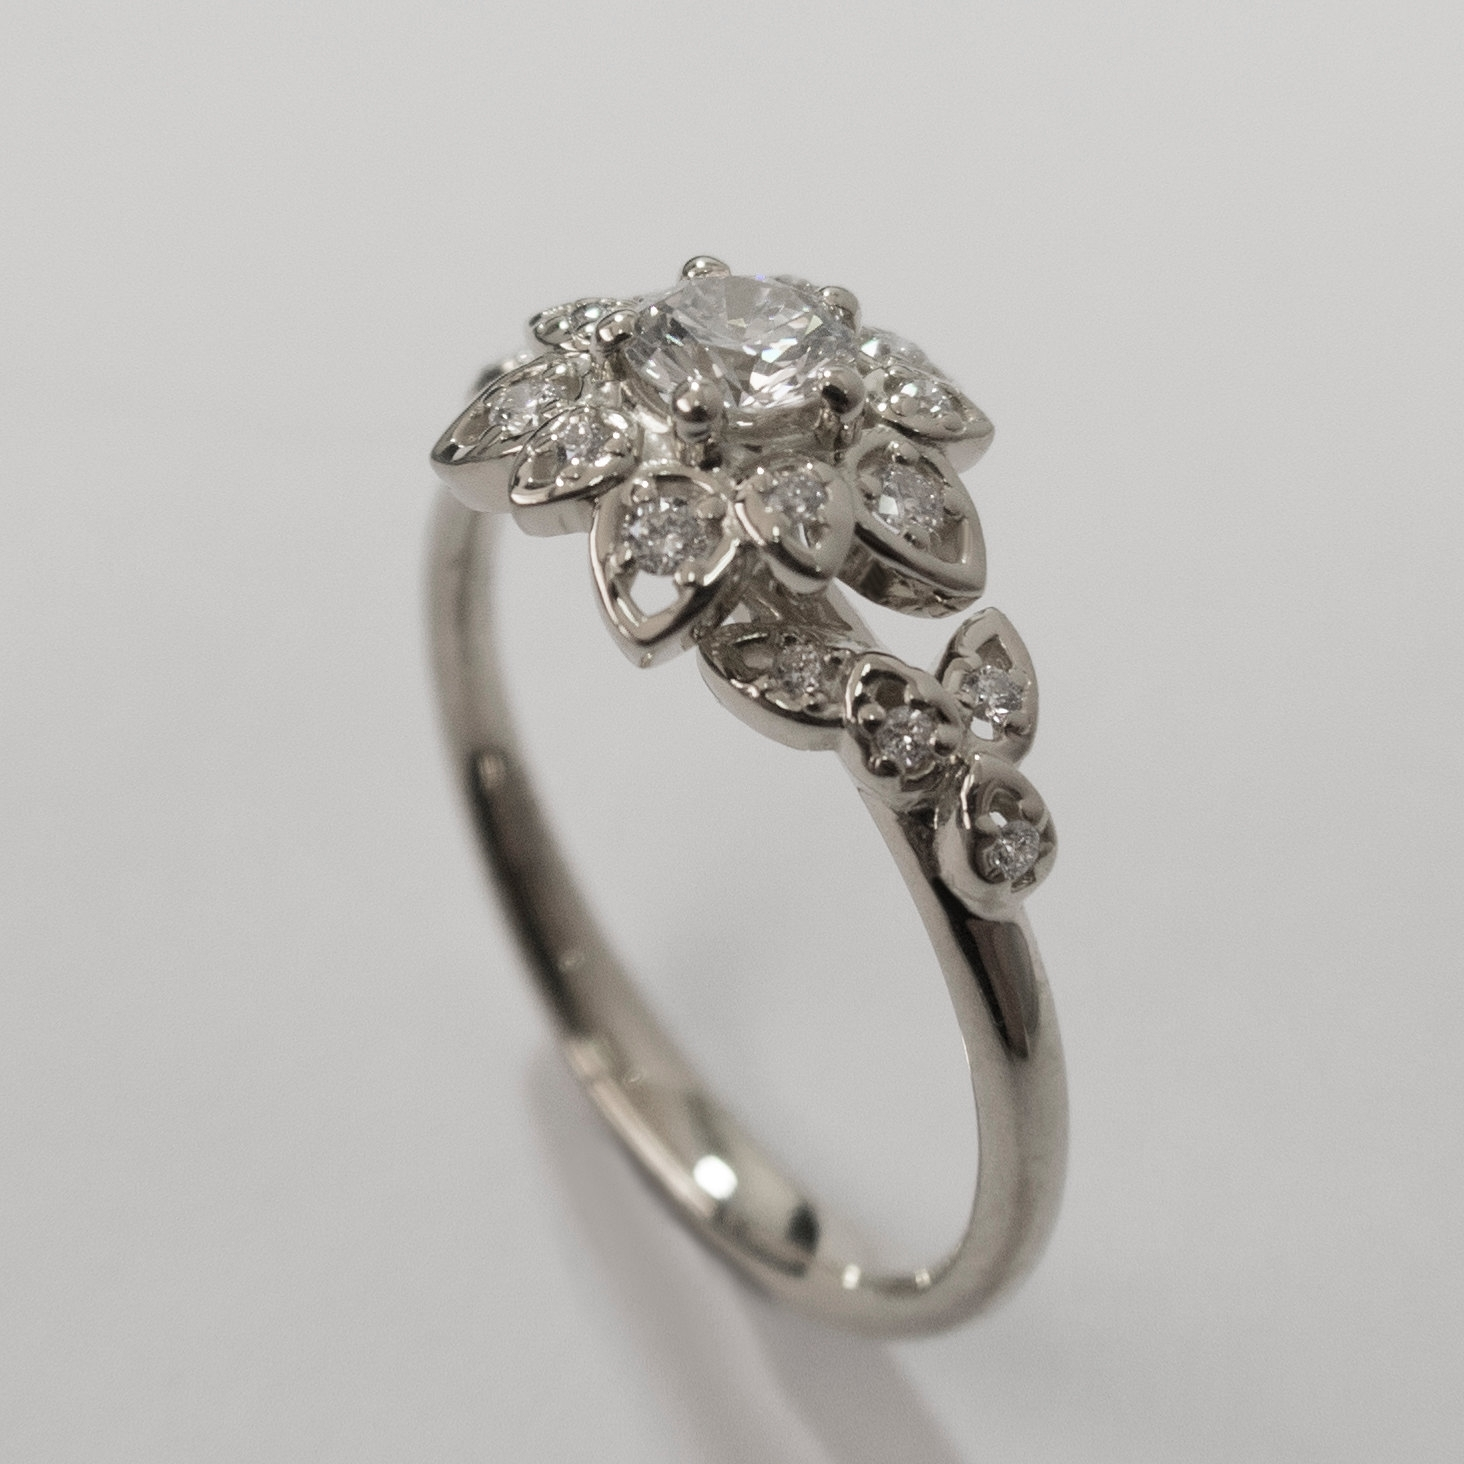 Vintage Filigree White Gold And Diamond Petal Engagement With 2018 Diamond Flower Vintage Style Engagement Rings In 14k White Gold (View 10 of 15)